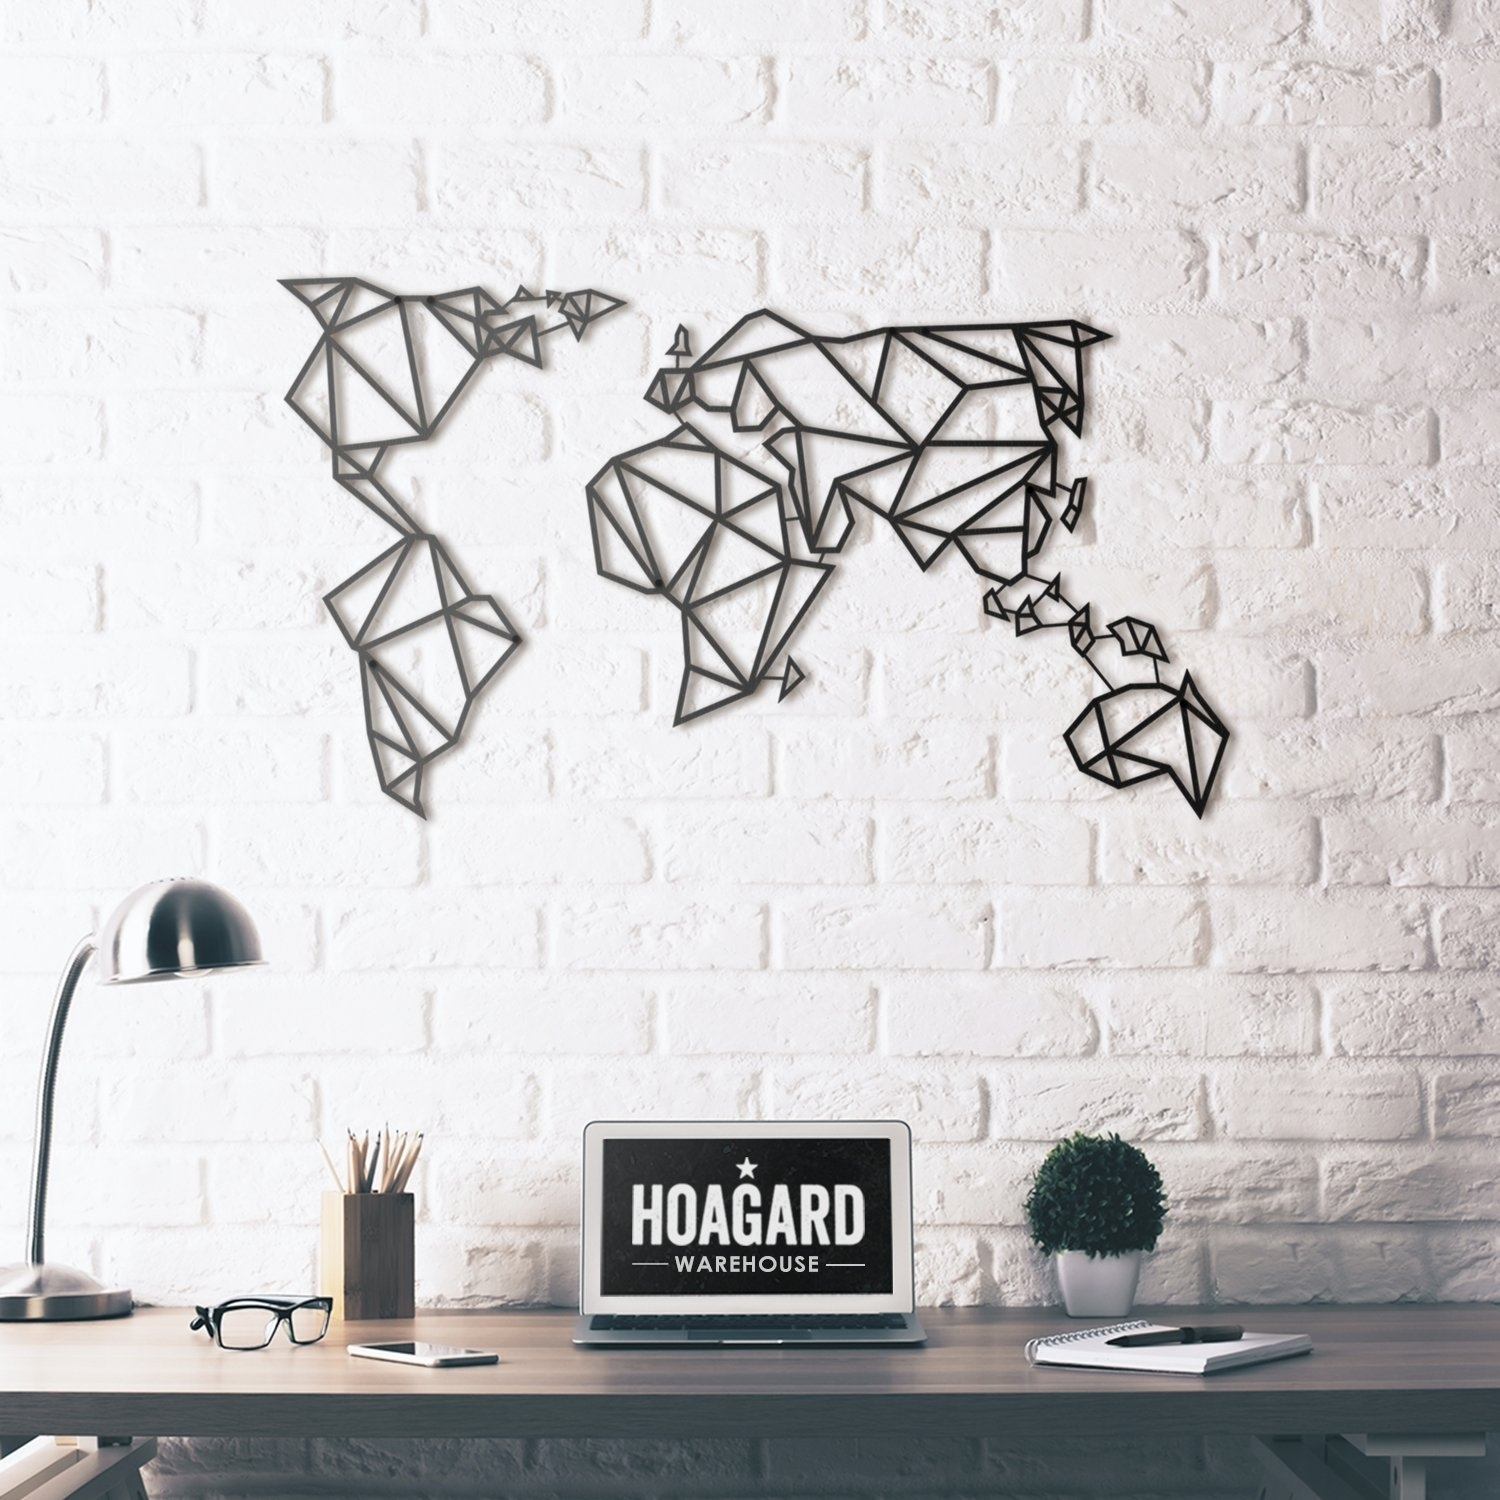 World Map Vinyl Wall Decal With Pins New | Astroinstitute Within Most Current Vinyl Wall Art World Map (View 15 of 20)